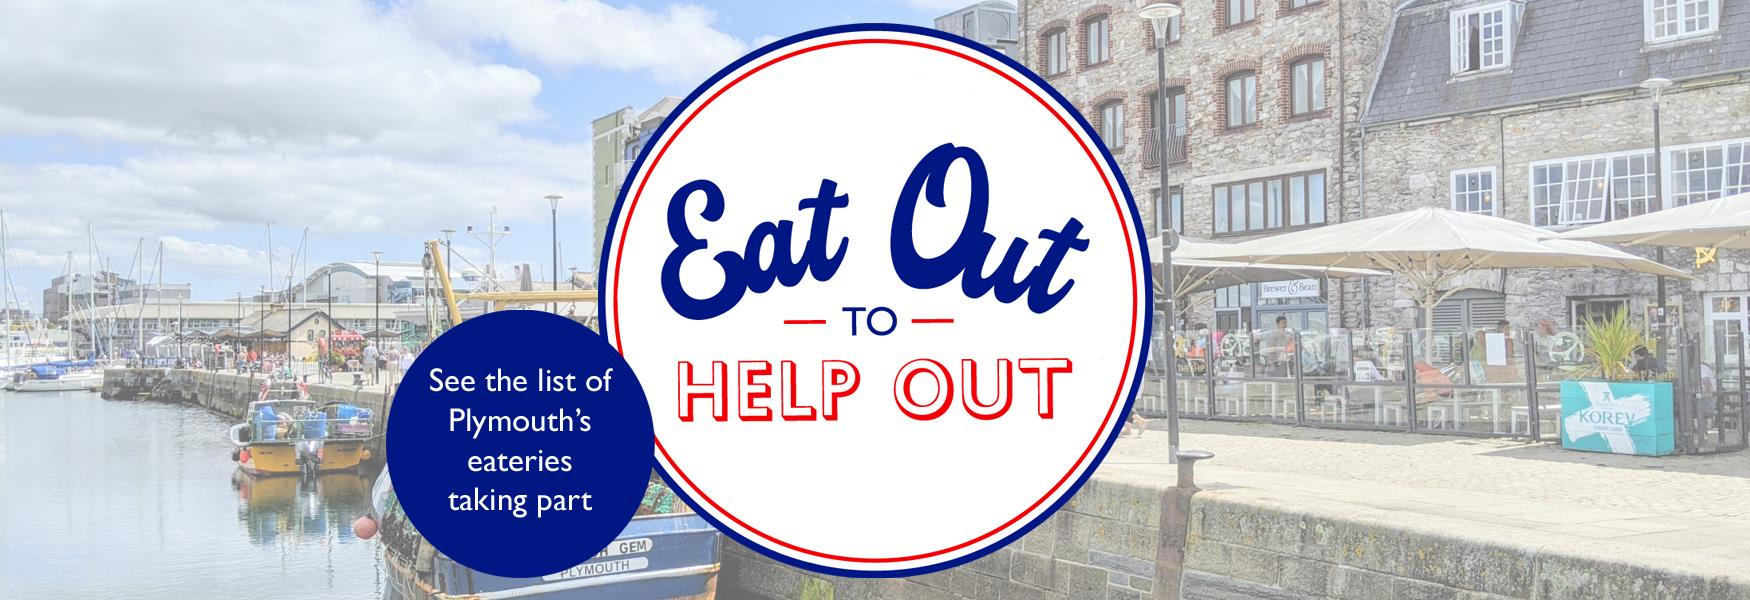 Barbican street with Eat Out to Help Out logo